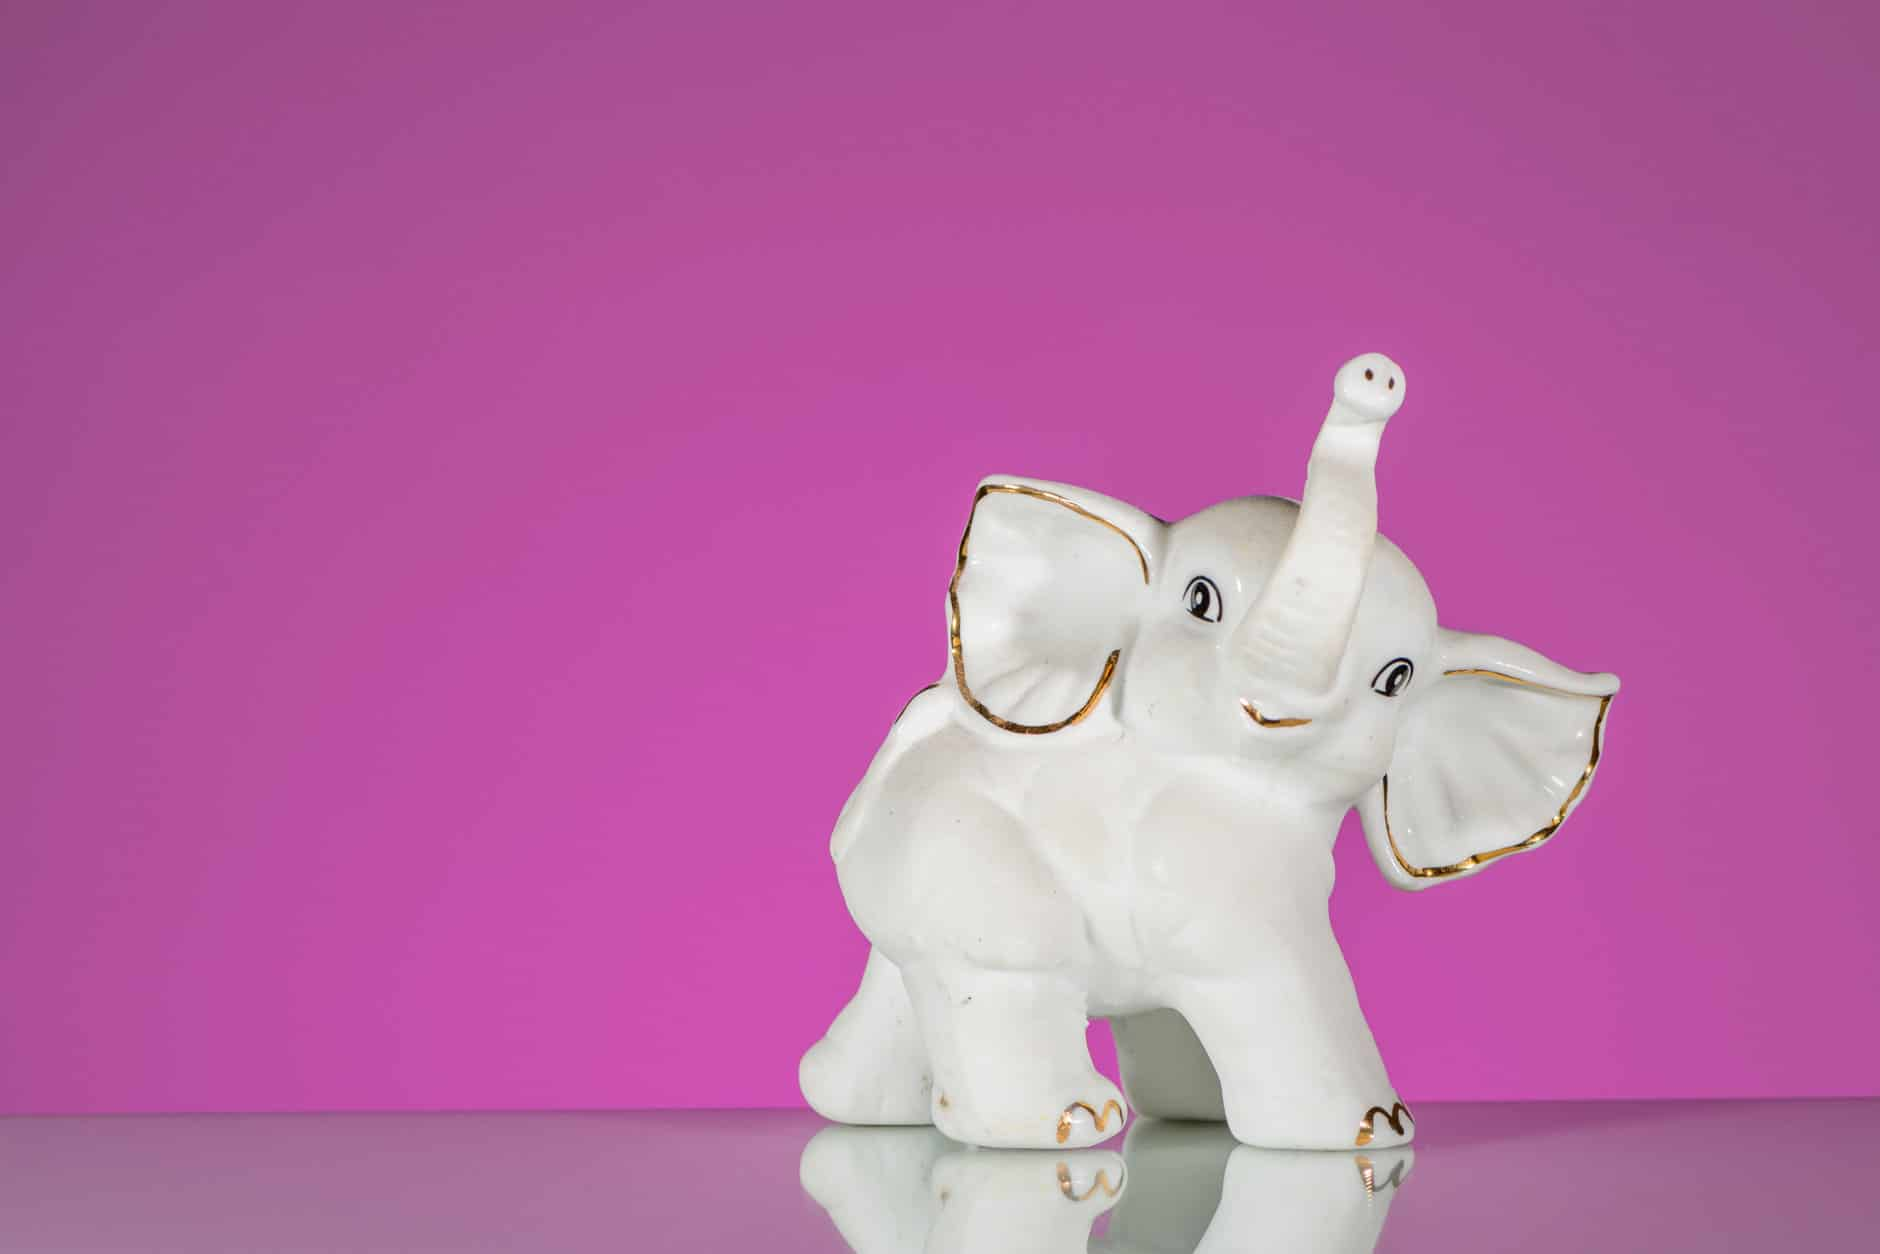 Closeup of white elephant made of porcelain, pink background